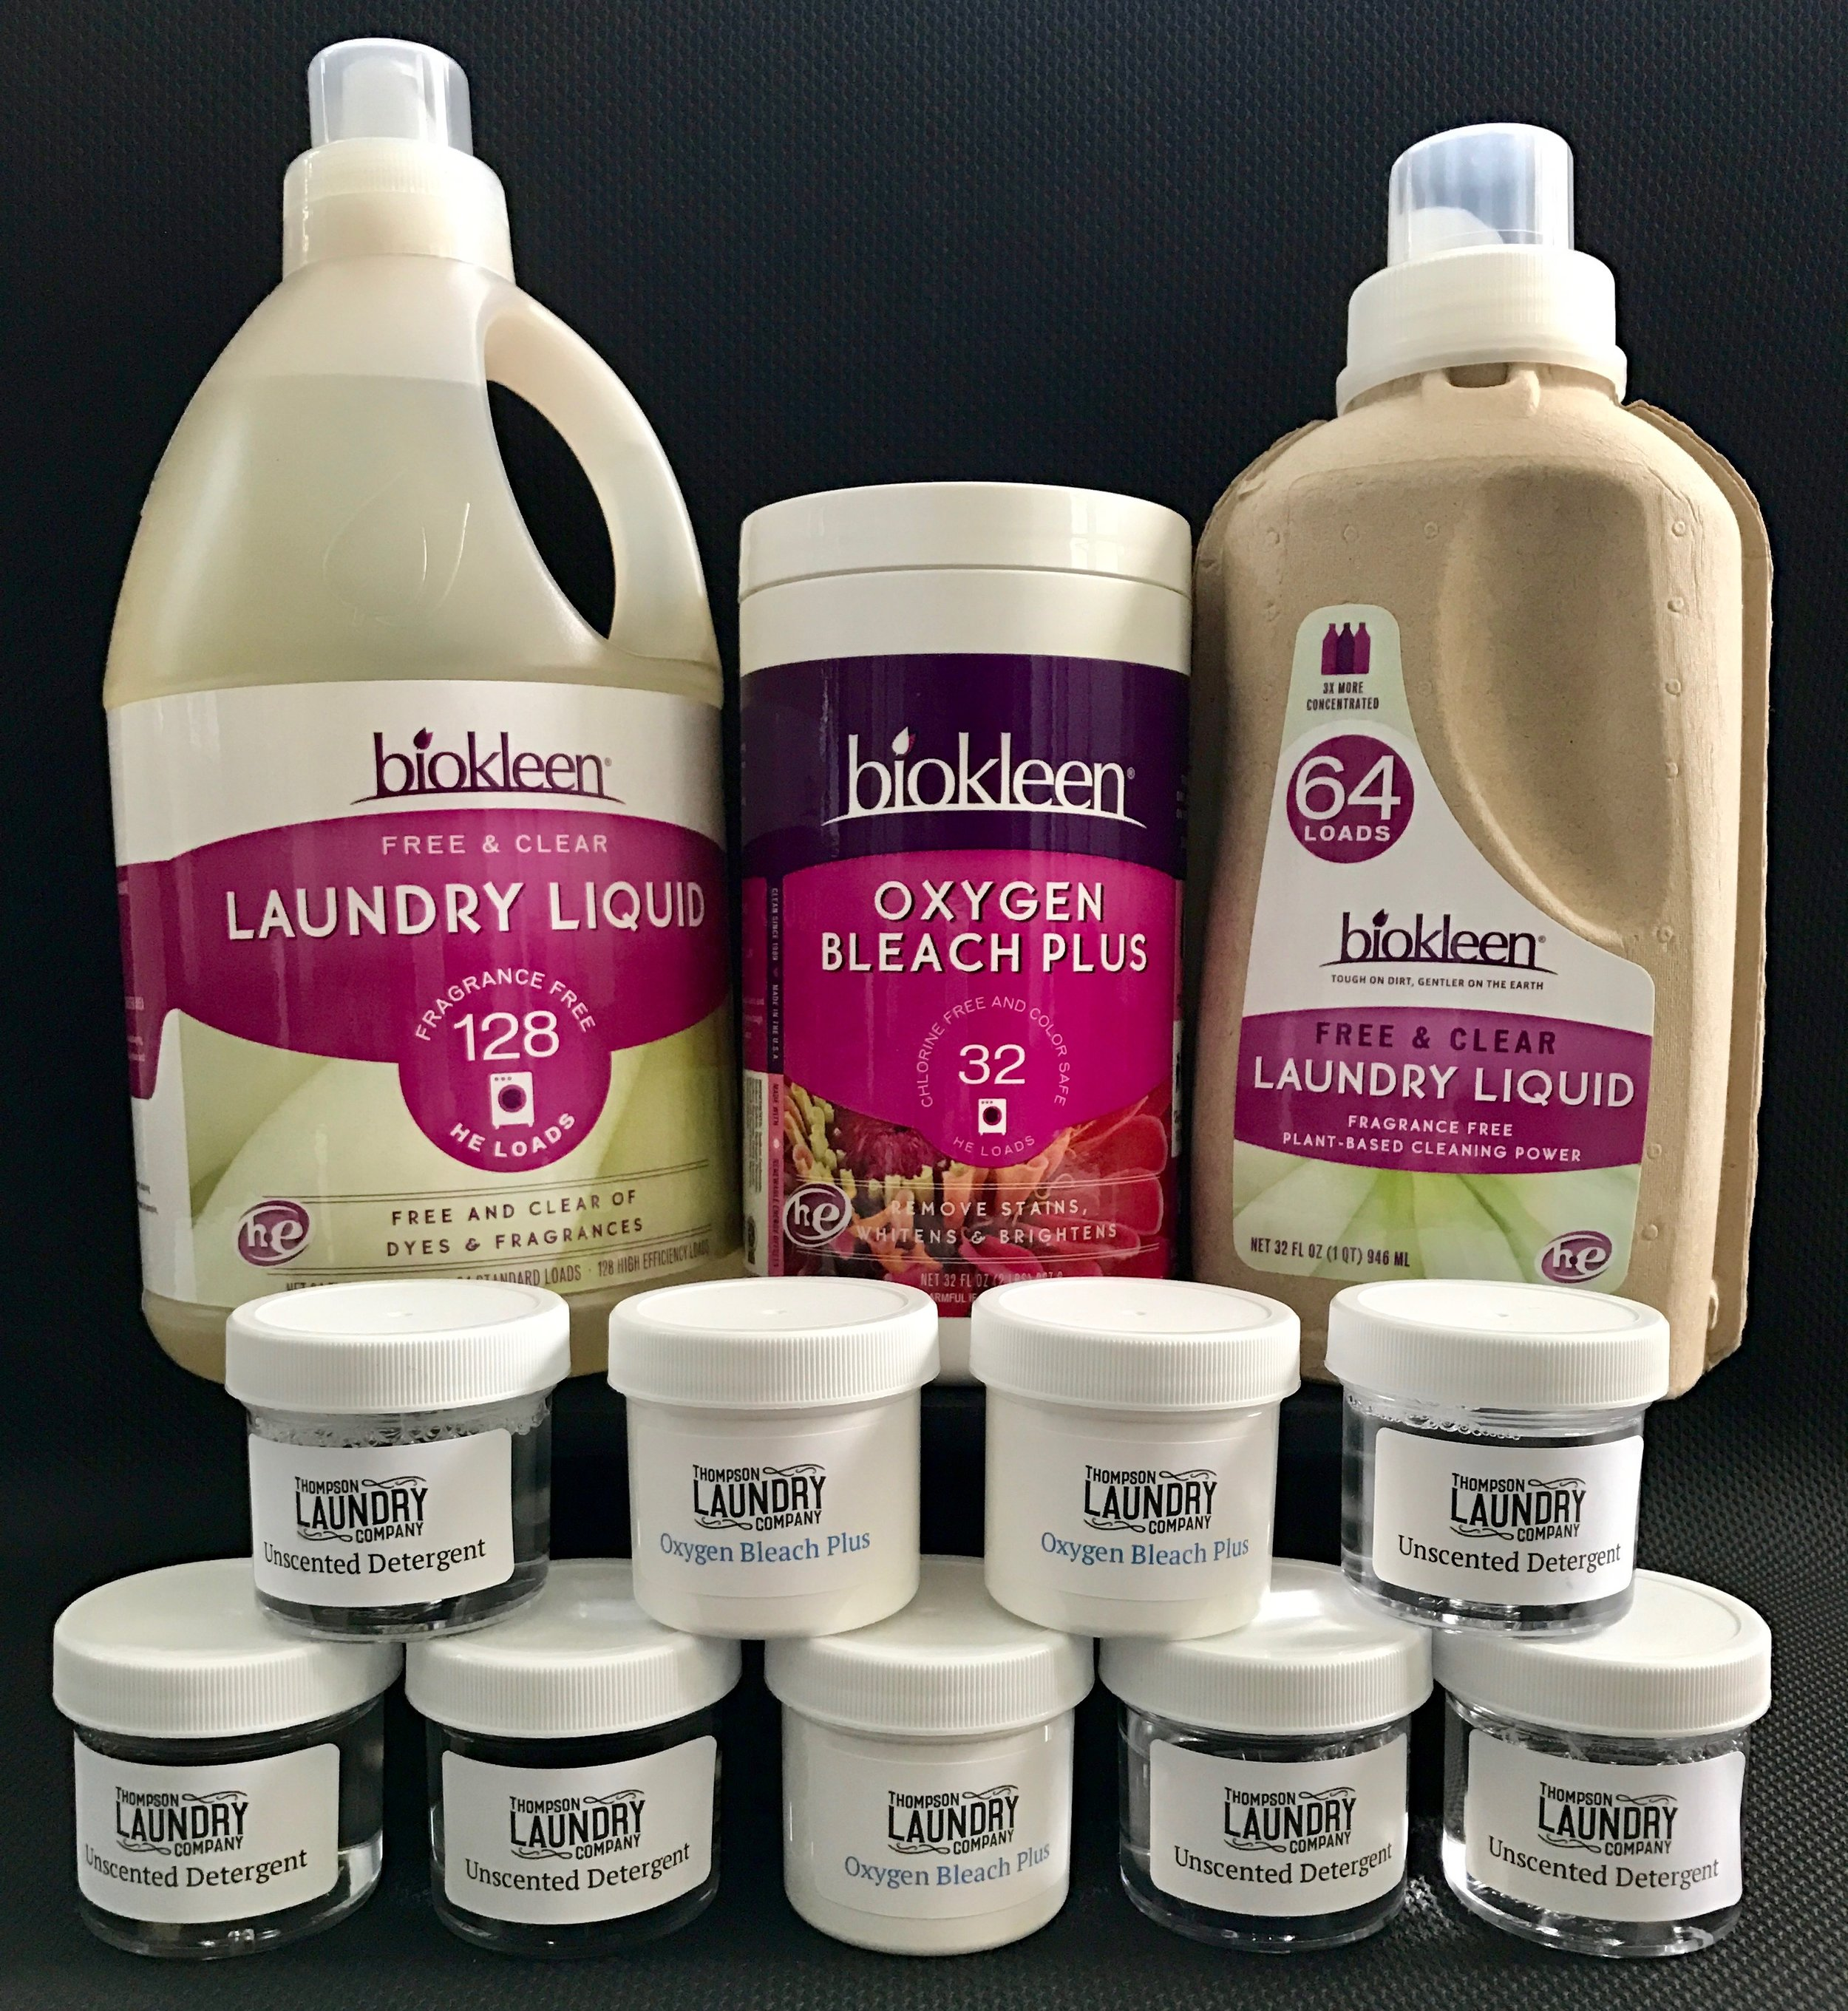 Biokleen products for sale at the front counter